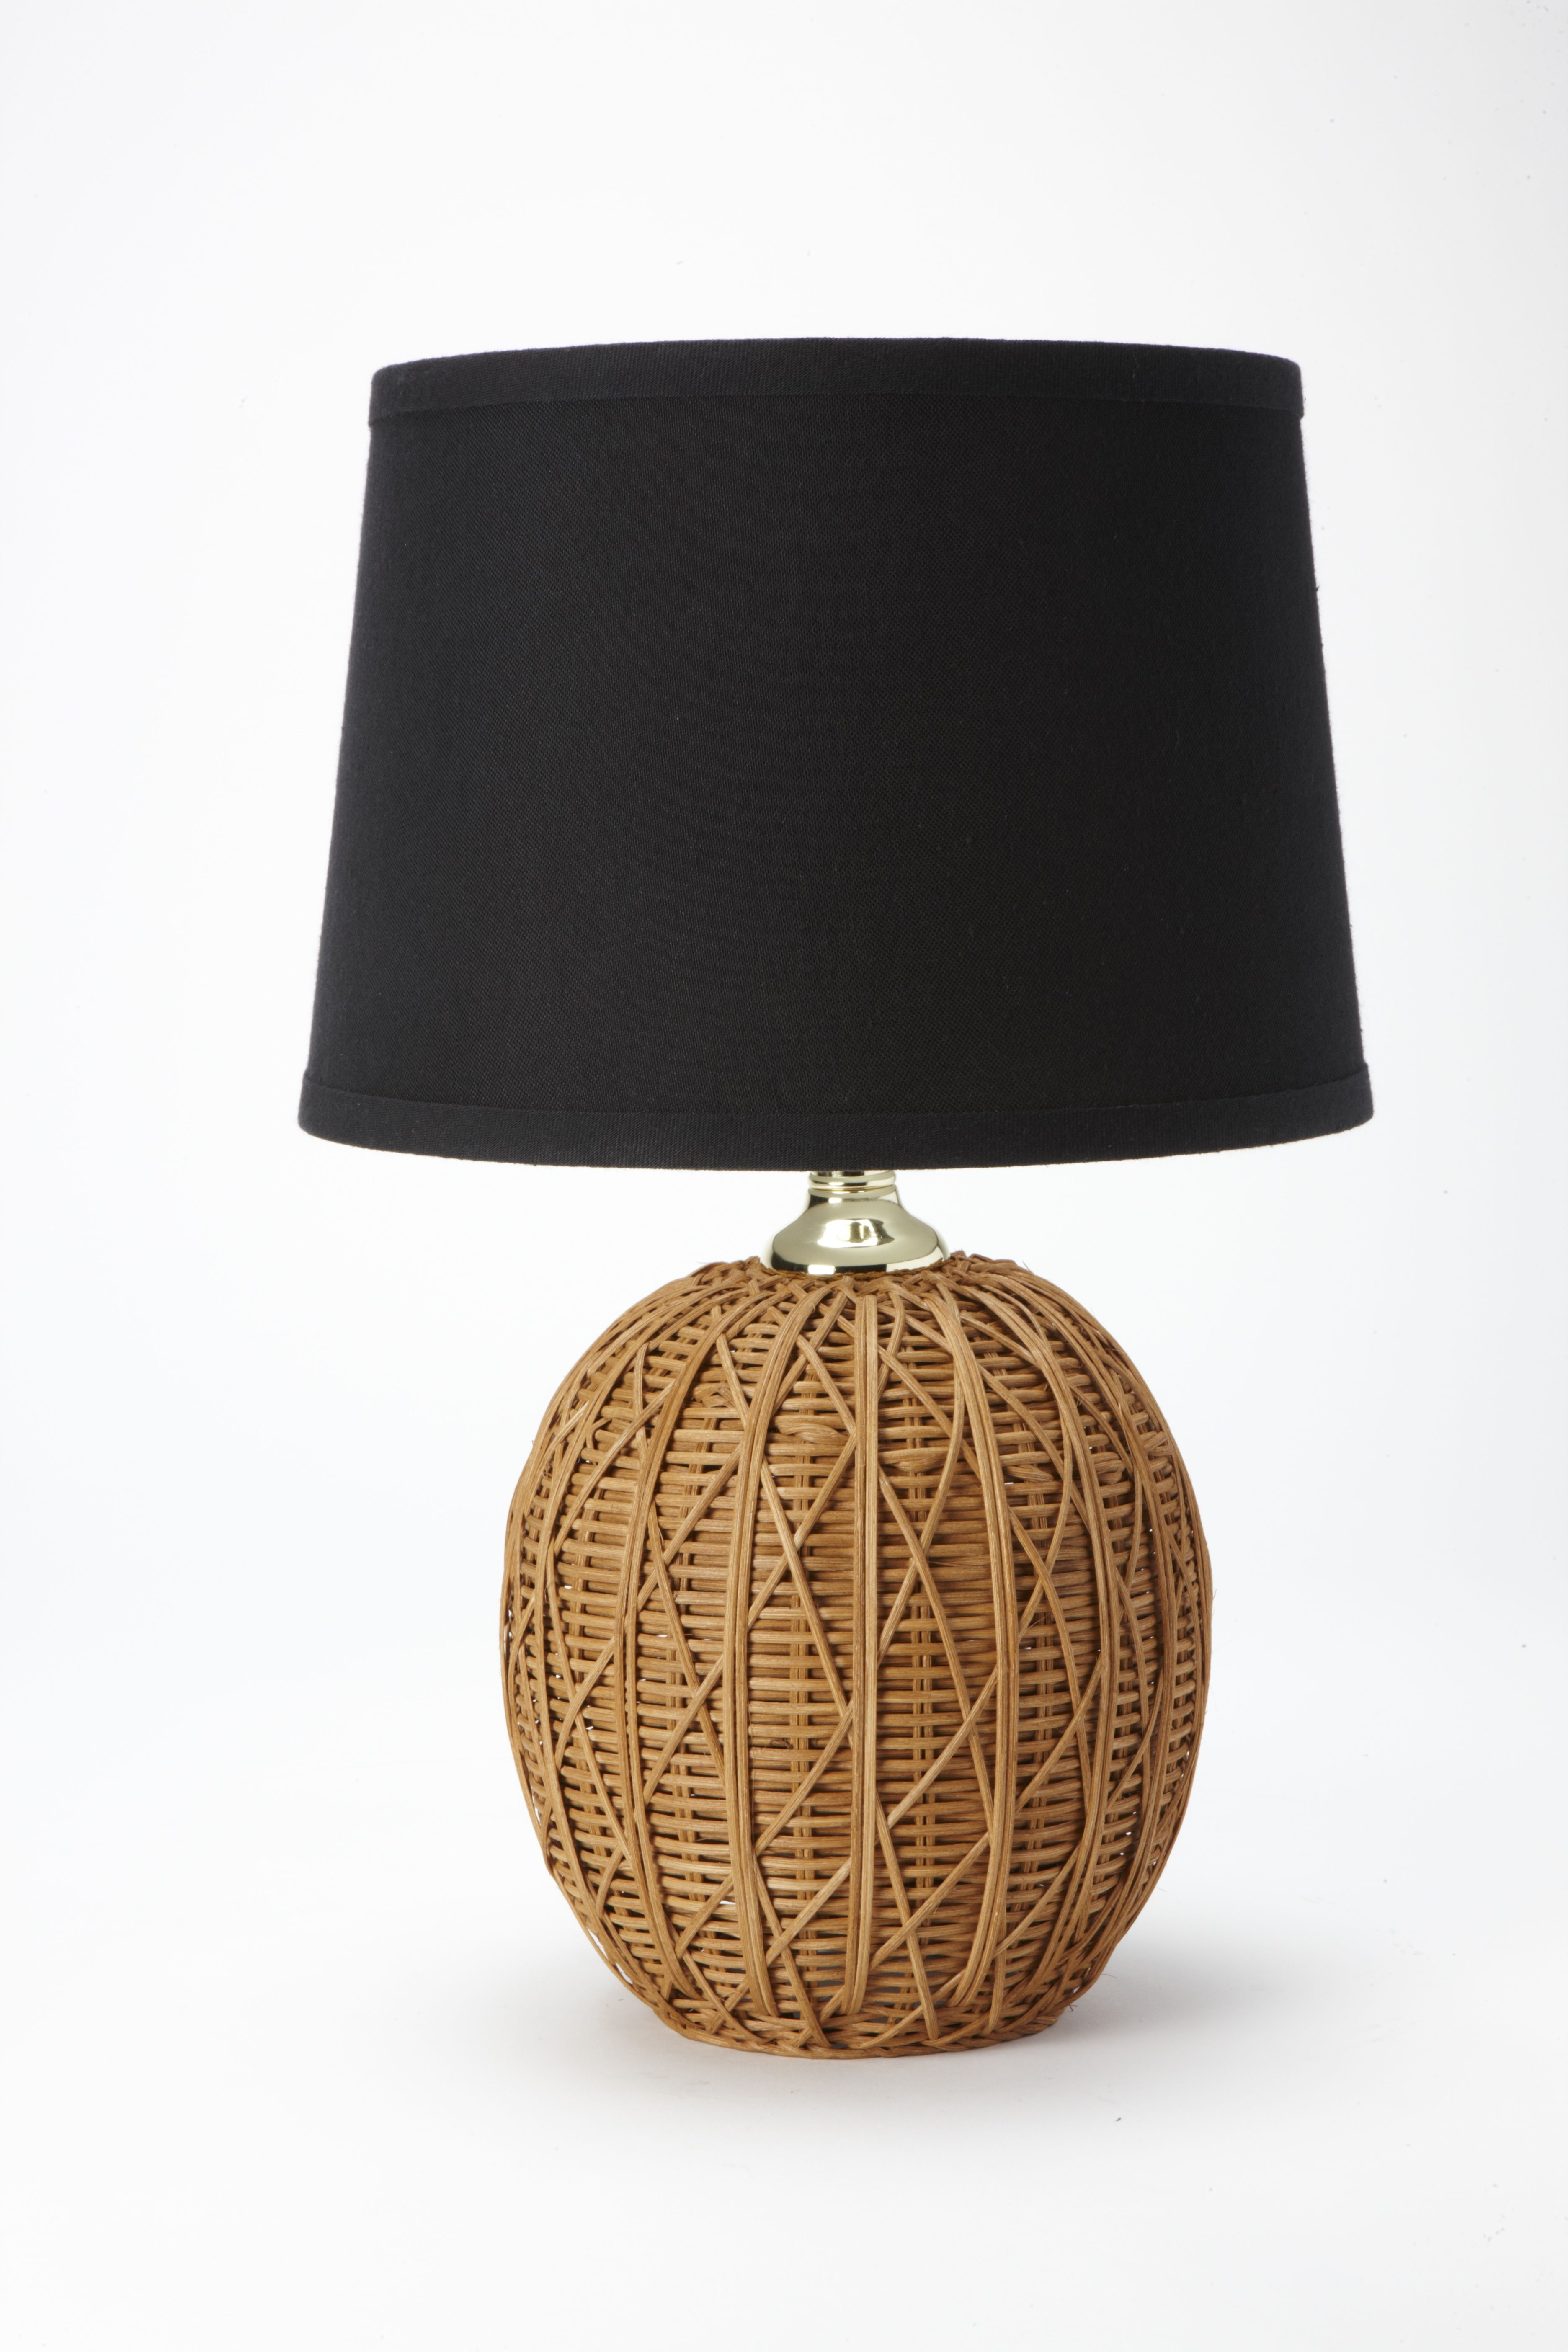 nate berkus woven rattan table lamp base with black linen shade cast metal accent wine rack tower white foyer bar height storage lucite sofa small oak telephone green marble top